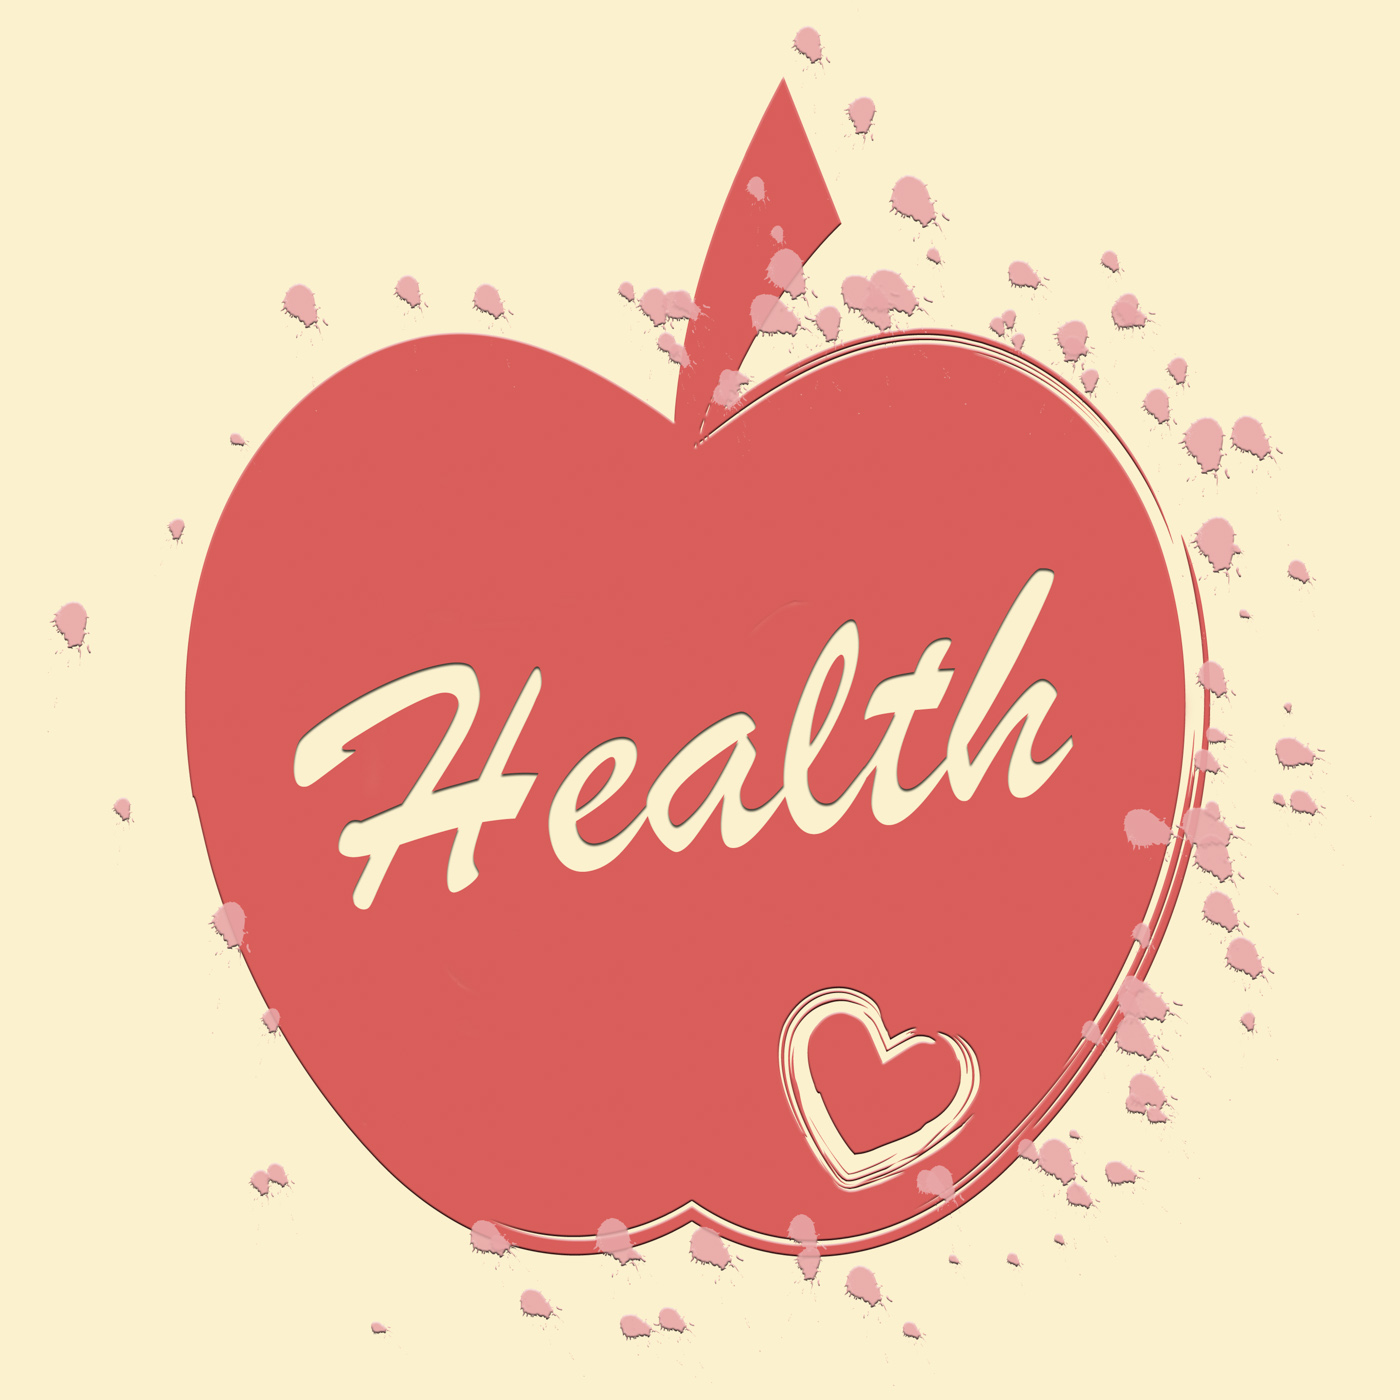 Health apple means healthy wellness and care photo